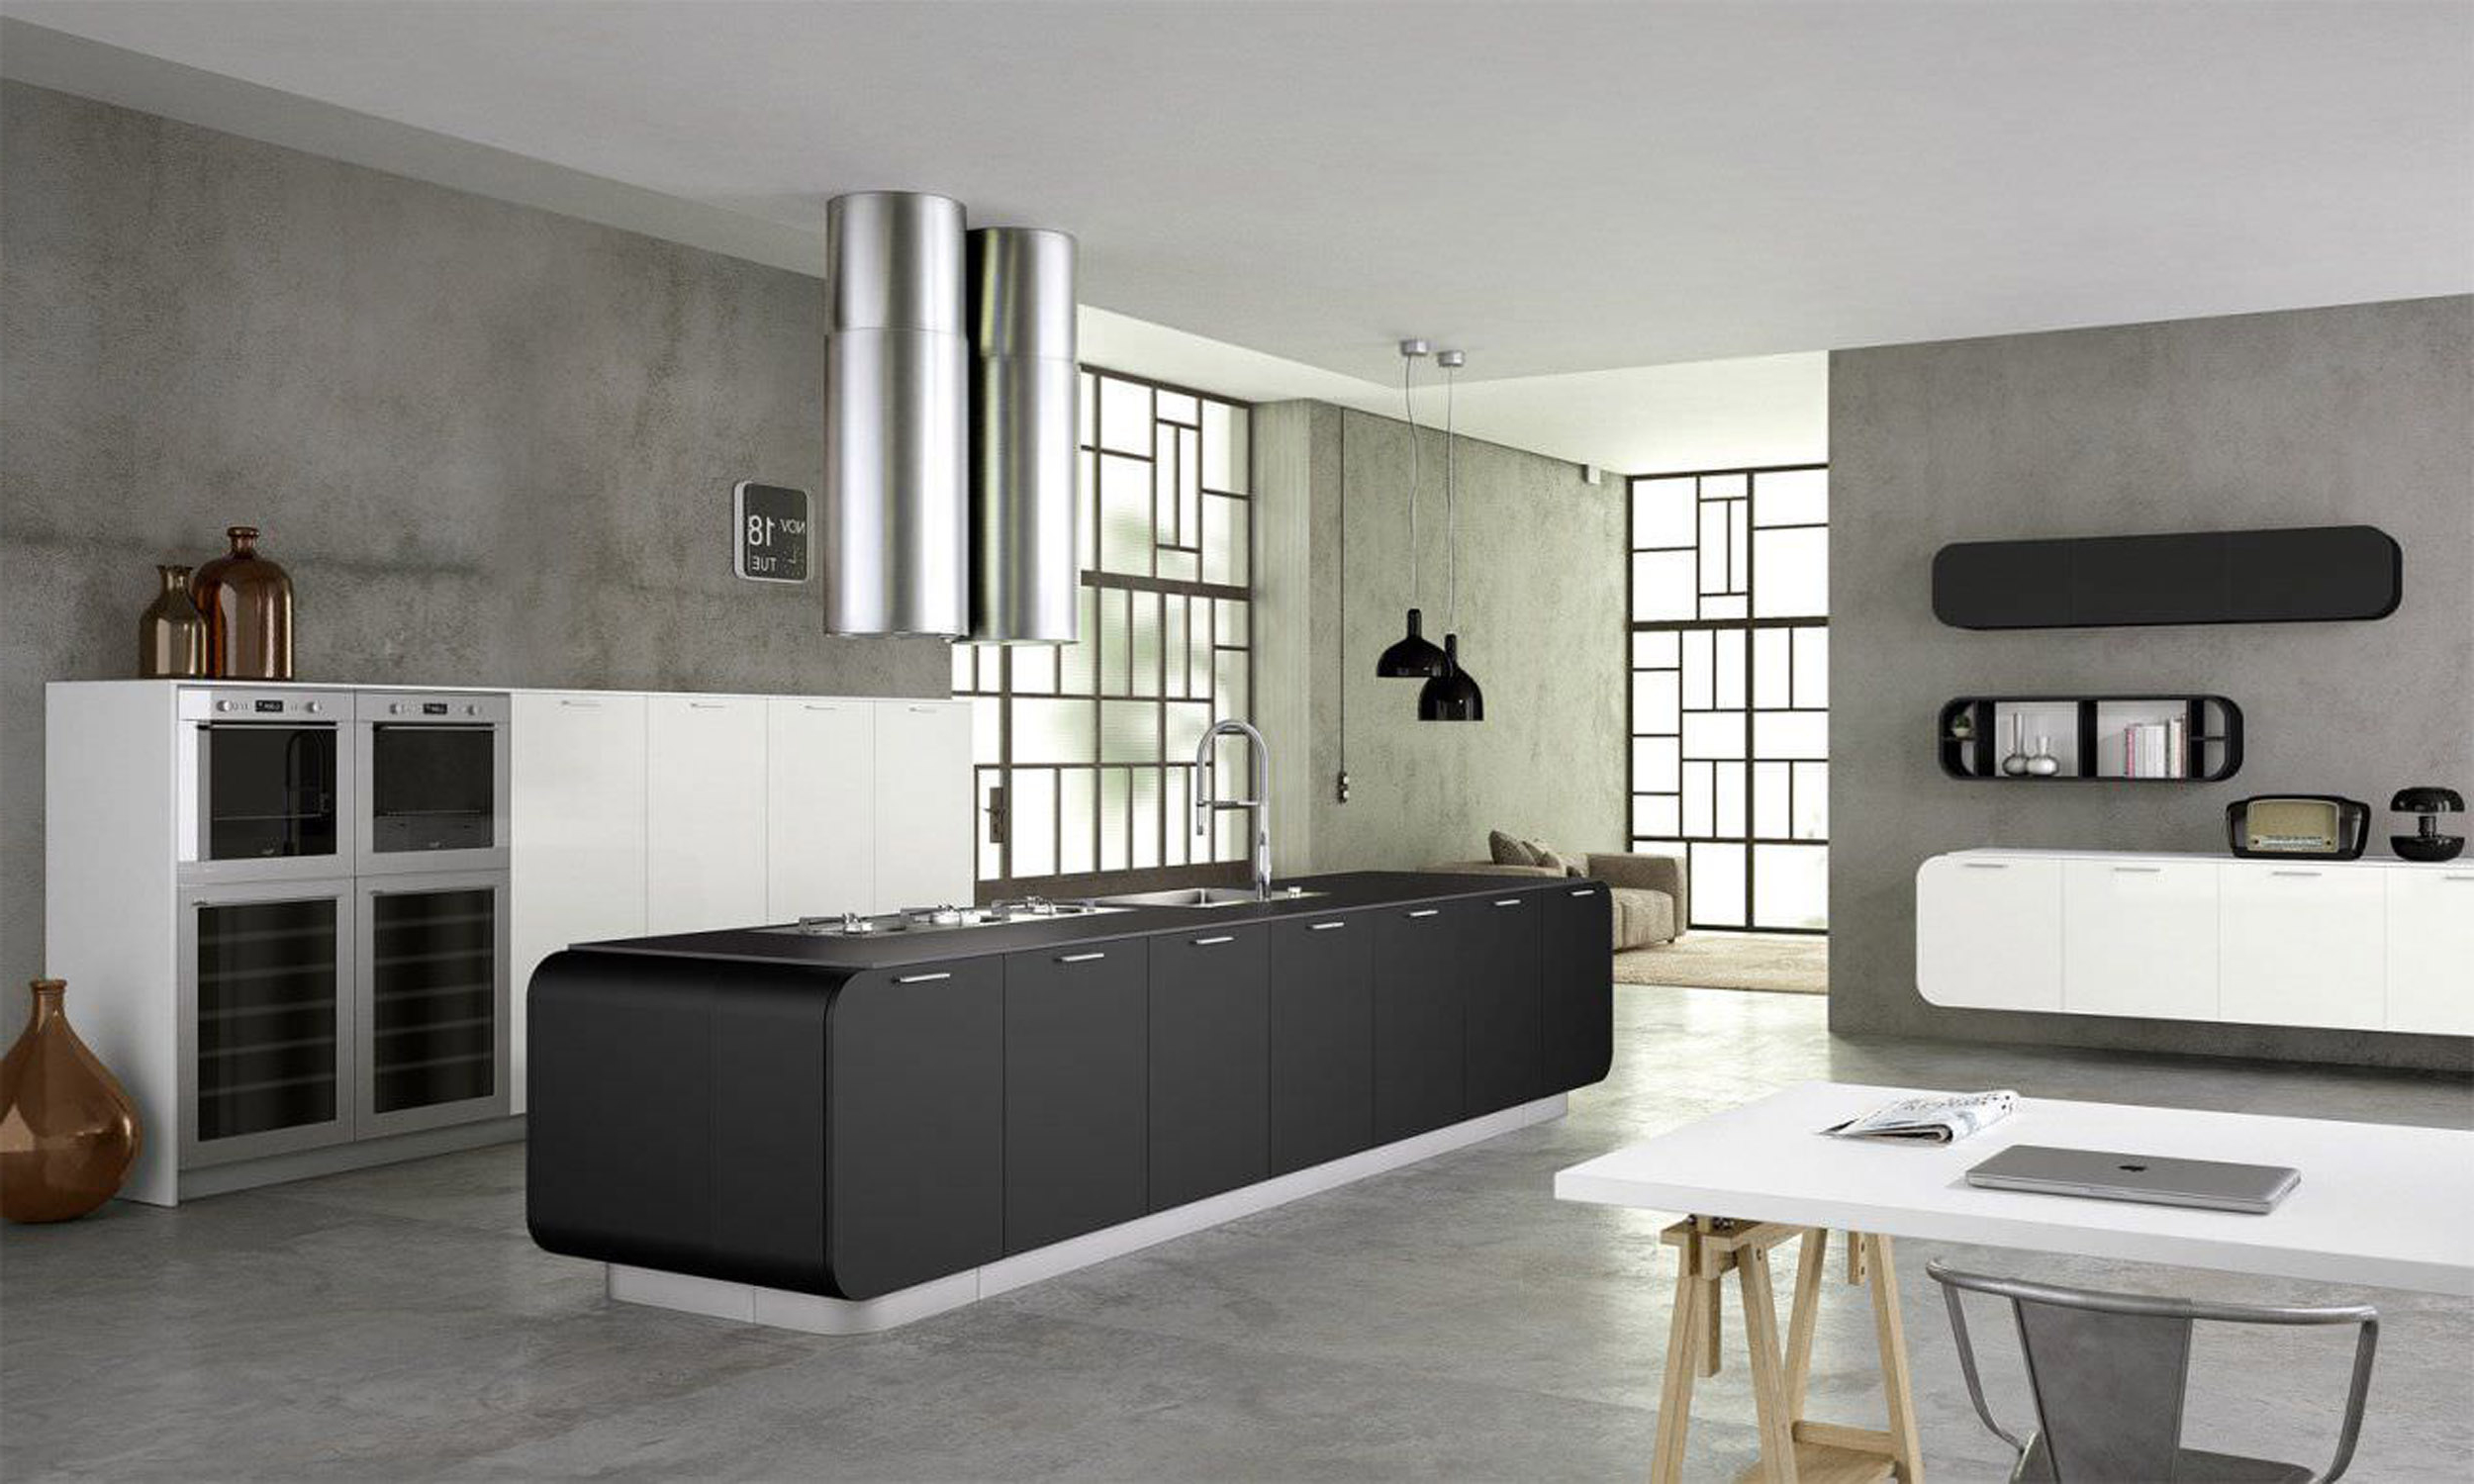 Inspirations Stylish Black And White Kitchen Good For Free Motion Contemporary Kitchen Islands Design Famous Style Of Modern Kitchen Designs (View 7 of 39)